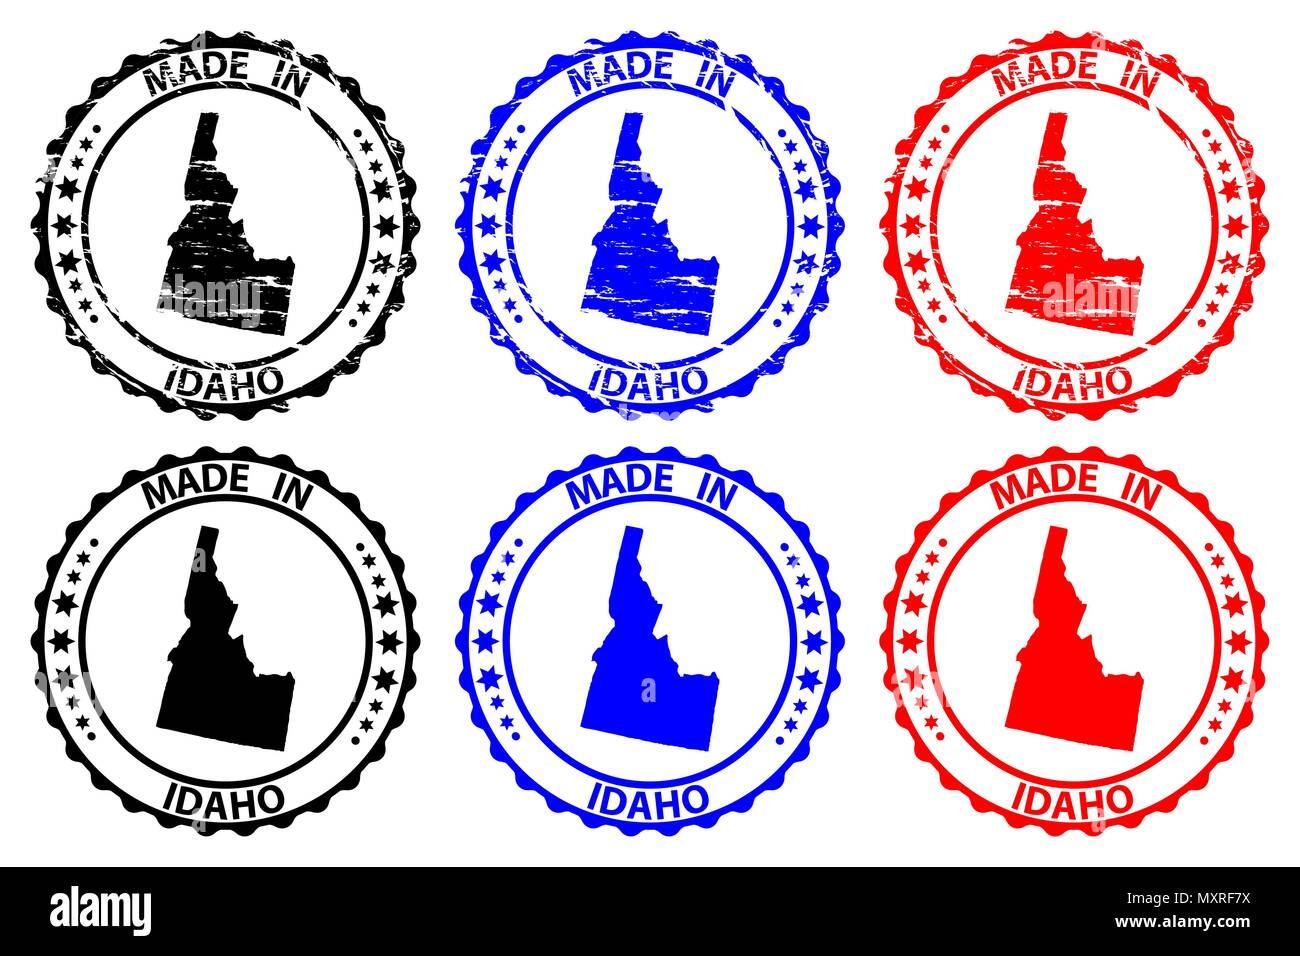 Made in Idaho - rubber stamp - vector, Idaho (United States of America) map pattern - black, blue  and red - Stock Vector